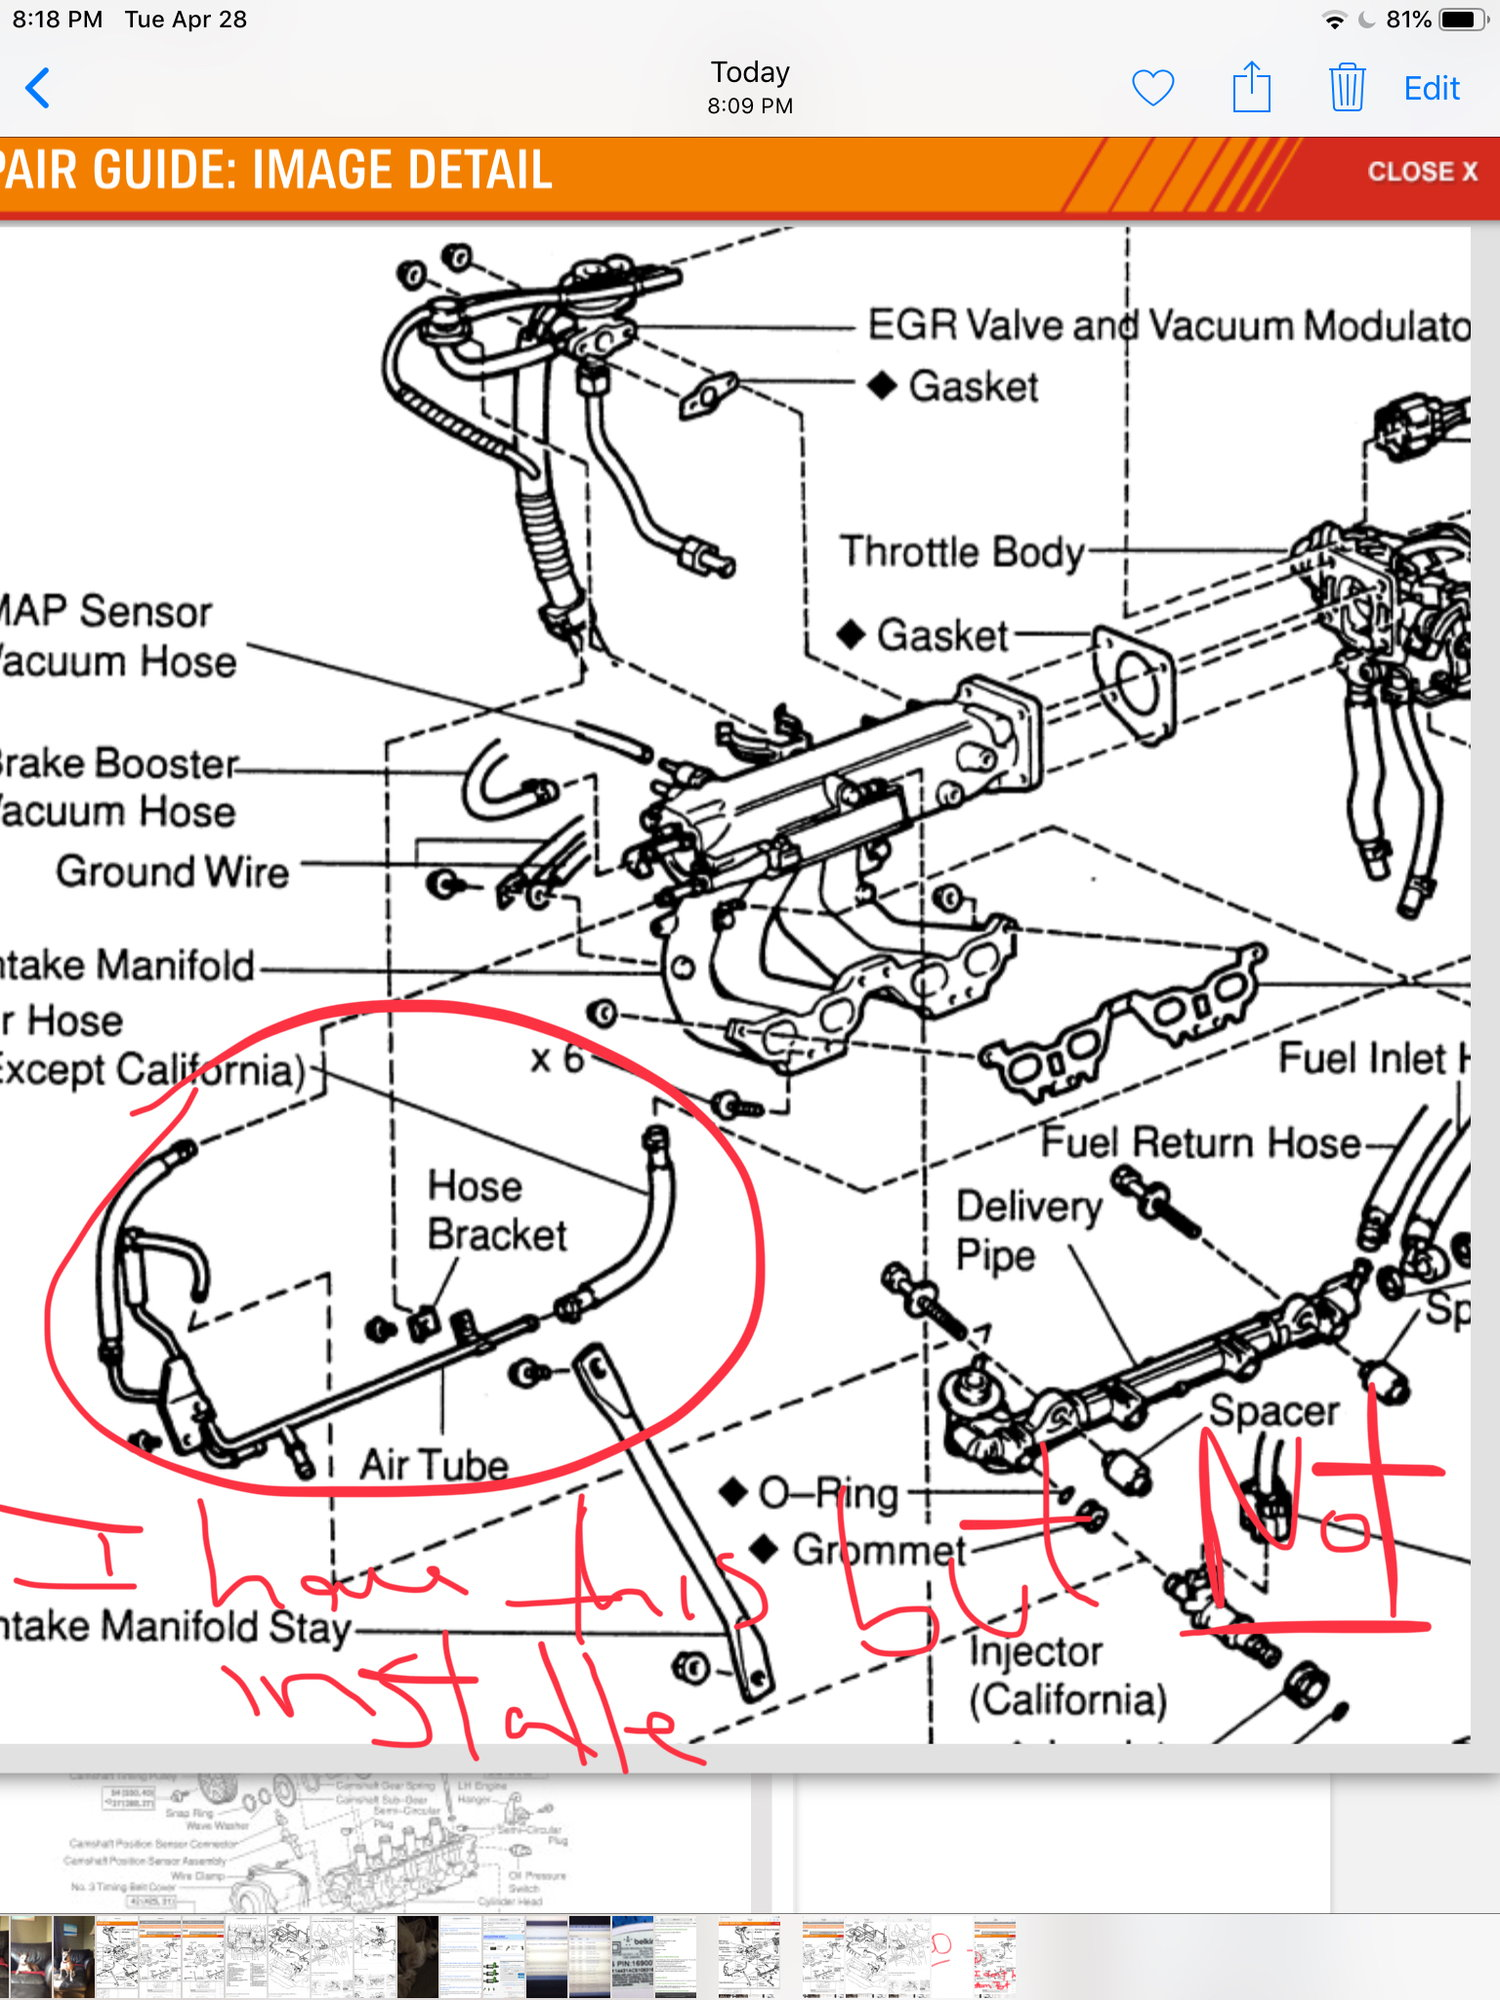 Engine Swap-check Engine Light  Bad Fuel Mileage-help  - Camry Forums